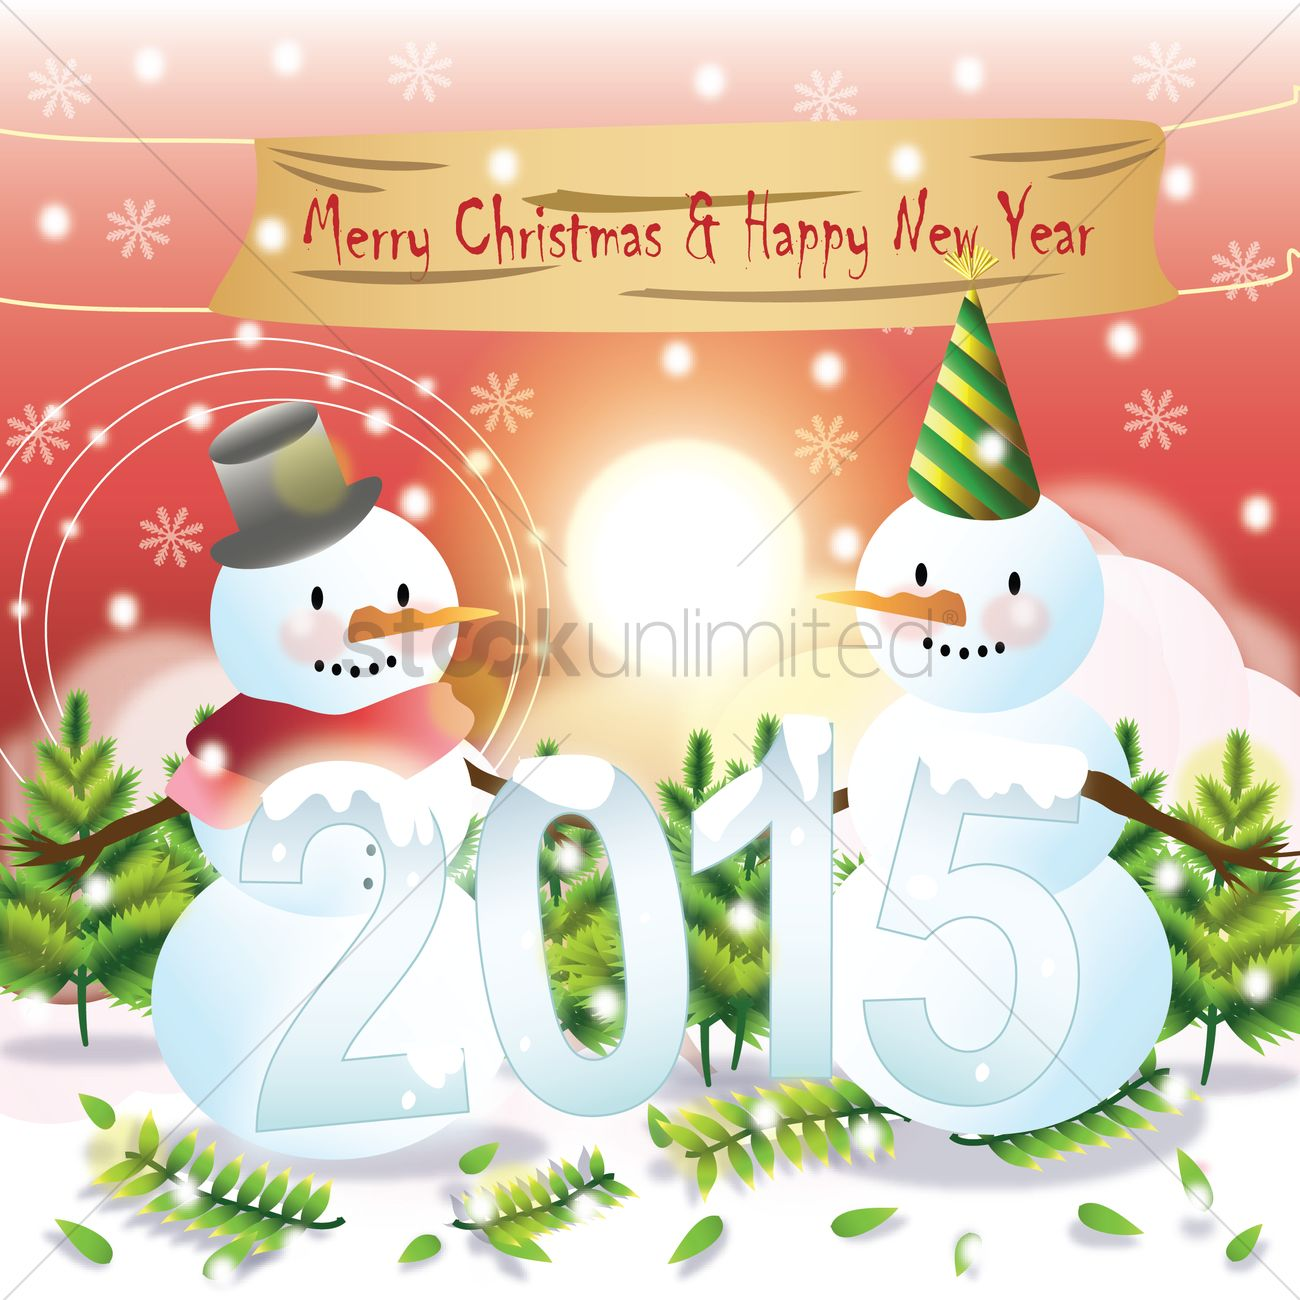 Merry christmas and happy new year card Vector Image - 1483931 ...